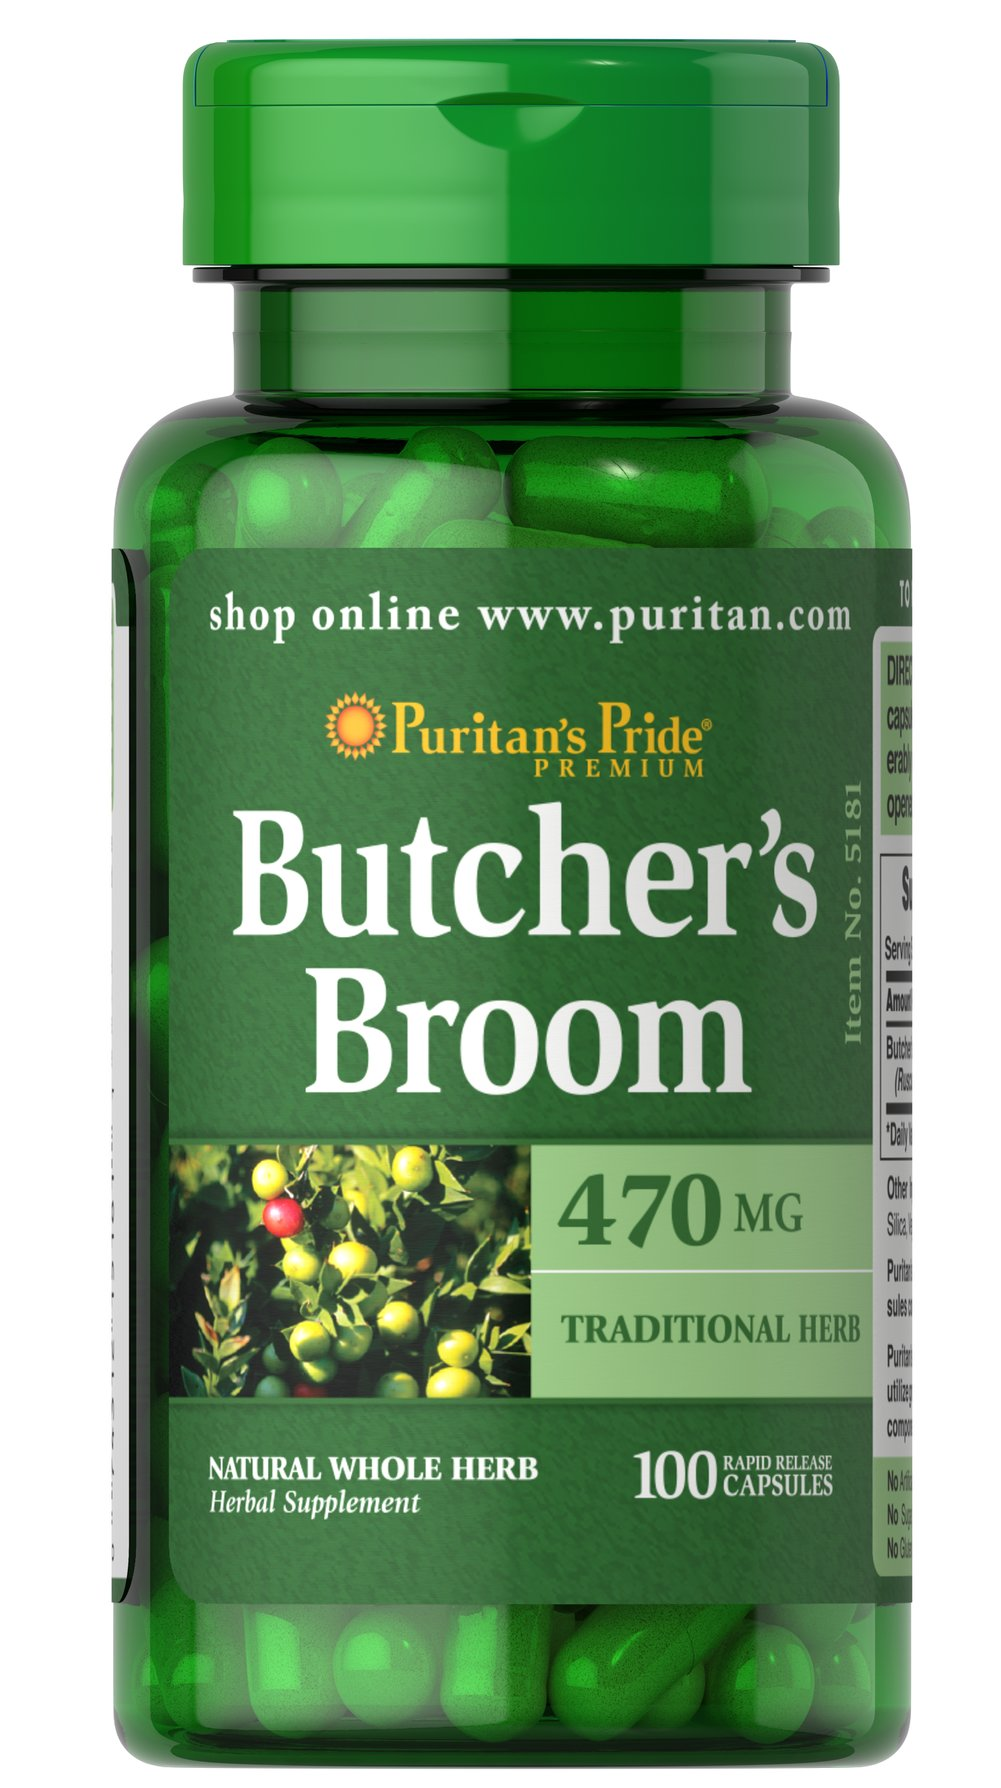 Butcher's Broom 470 mg <p>Butcher's Broom is a traditional herb that is derived exclusively from the root portion of the plant.</p><ul><li>Puritan's Pride preservative-free gelatin capsules contain pure milled herb powder.</li><li>Puritan's Pride Natural Whole Herb Products utilize ground plant parts to provide the natural components found in nature.</li></ul><p></p> 100 Capsules 470 mg $11.99